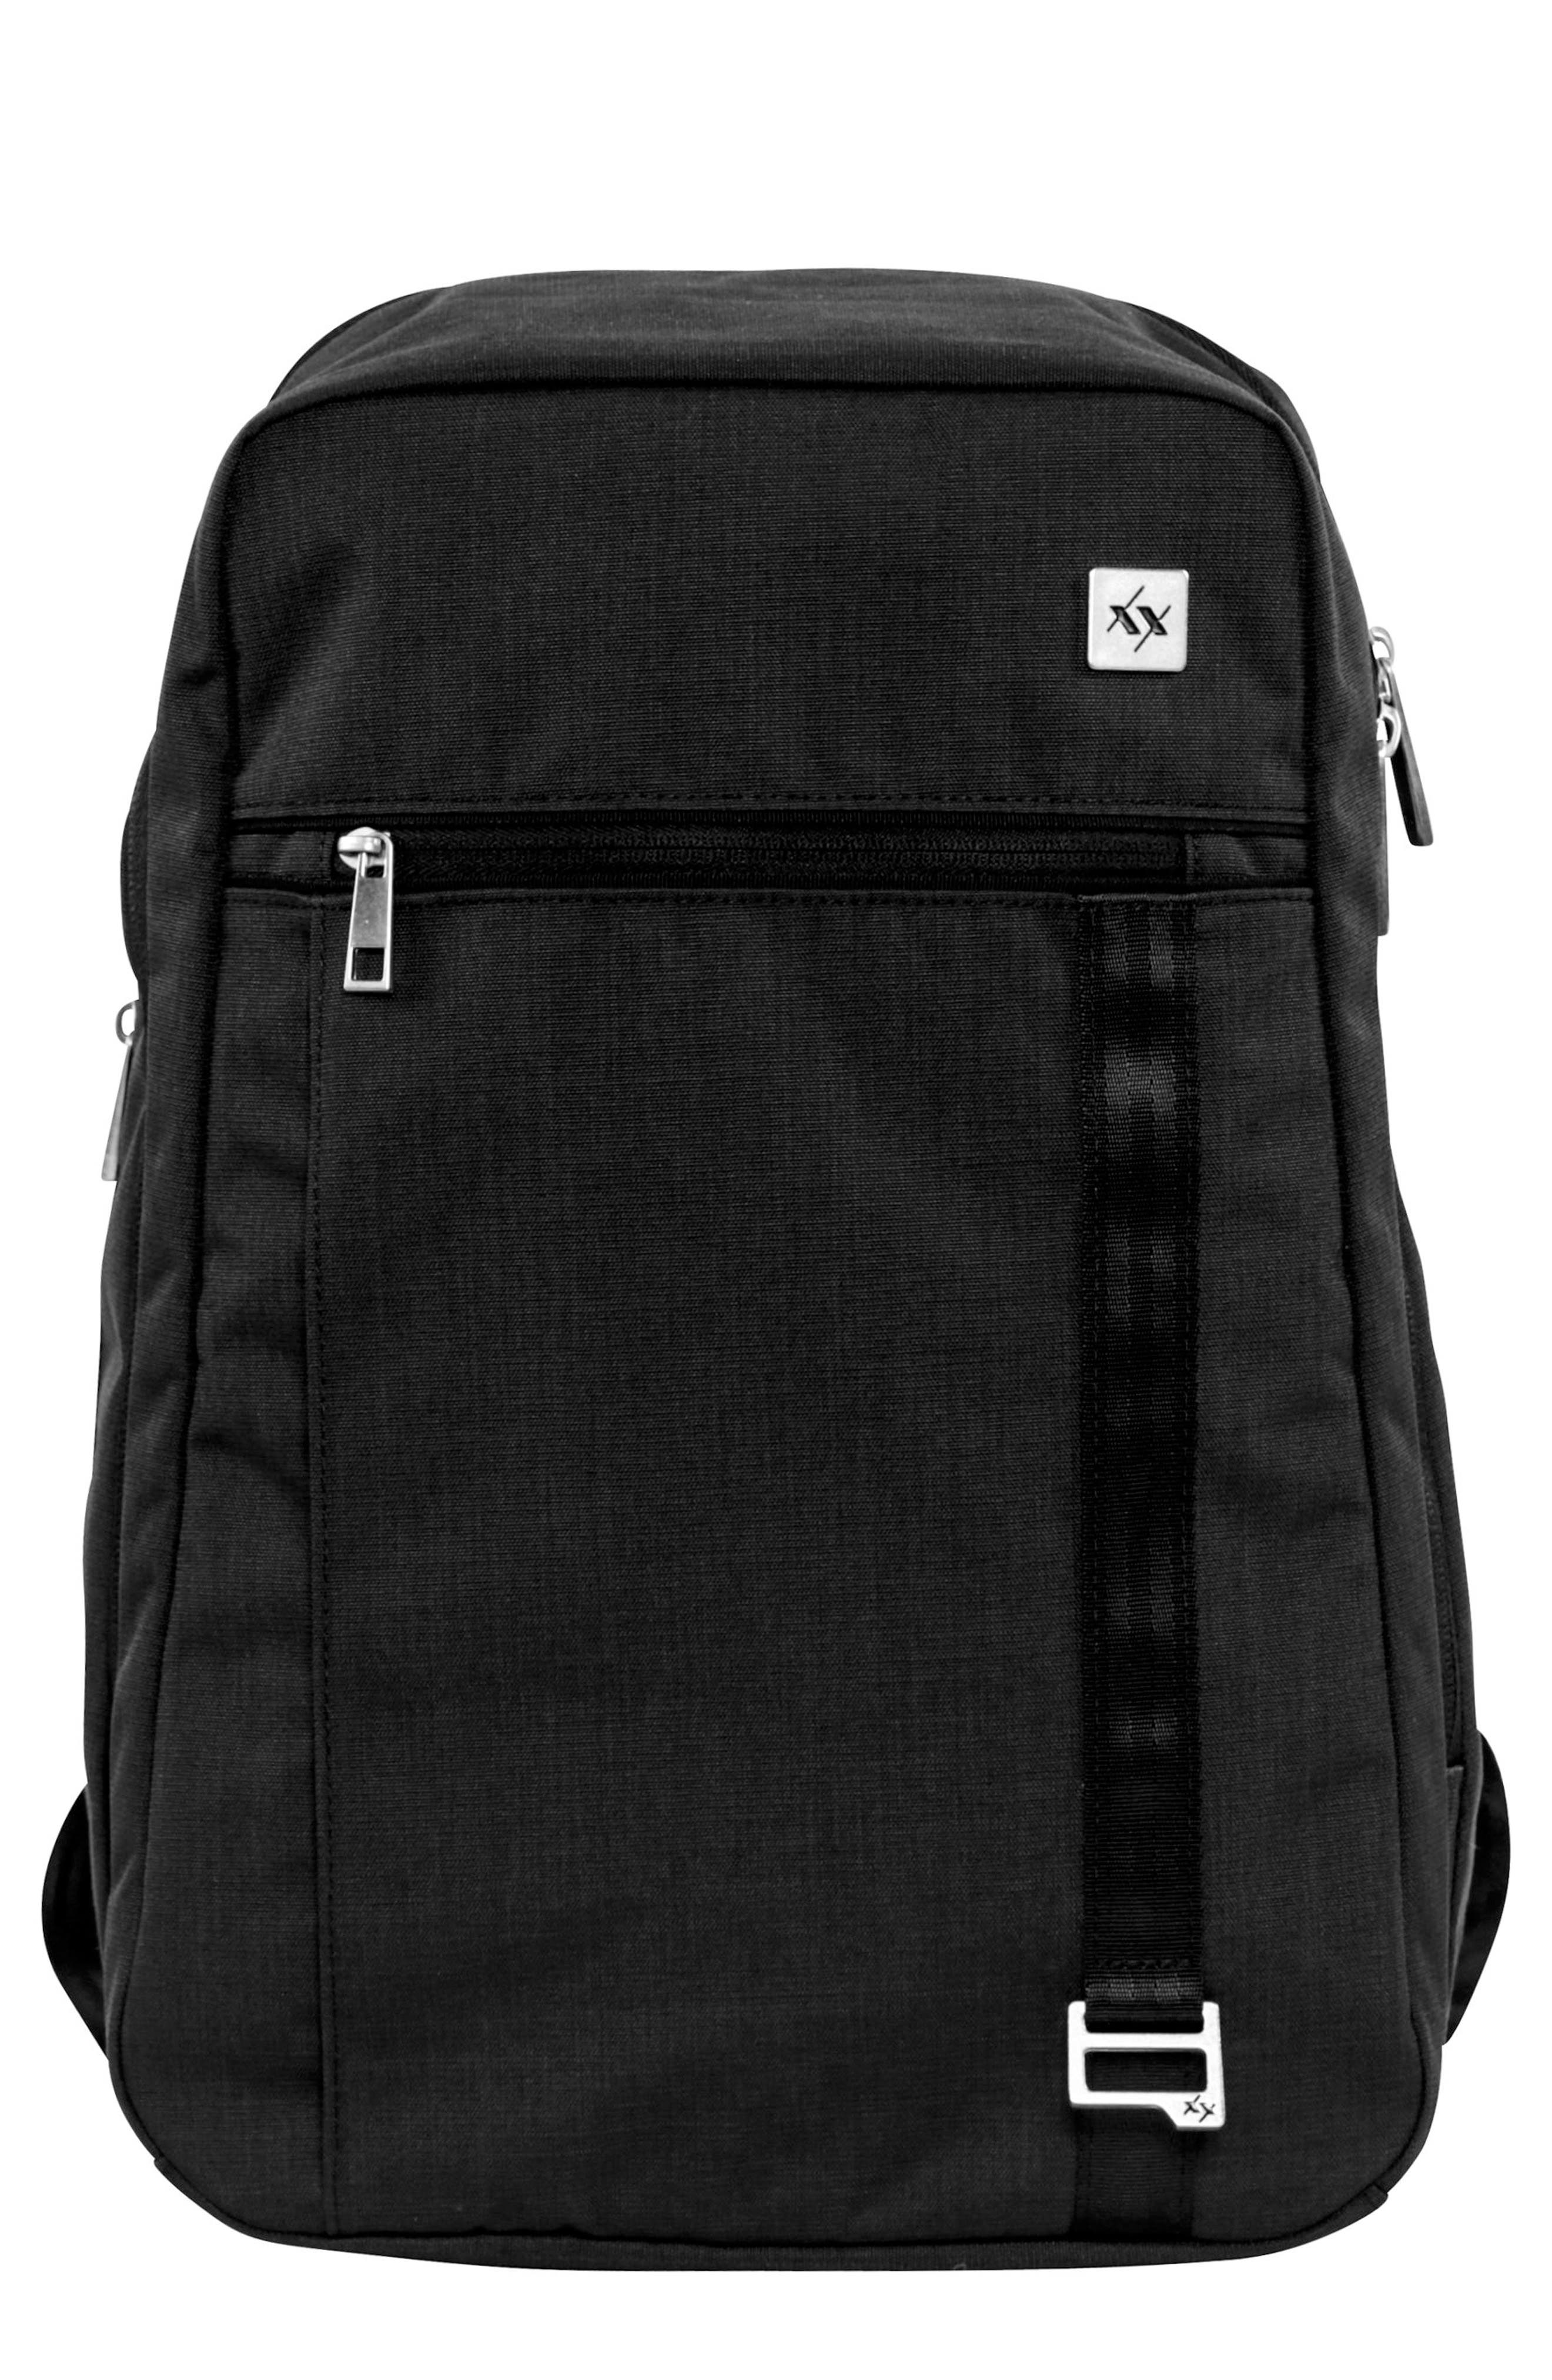 XY Base Diaper Backpack,                         Main,                         color, 009